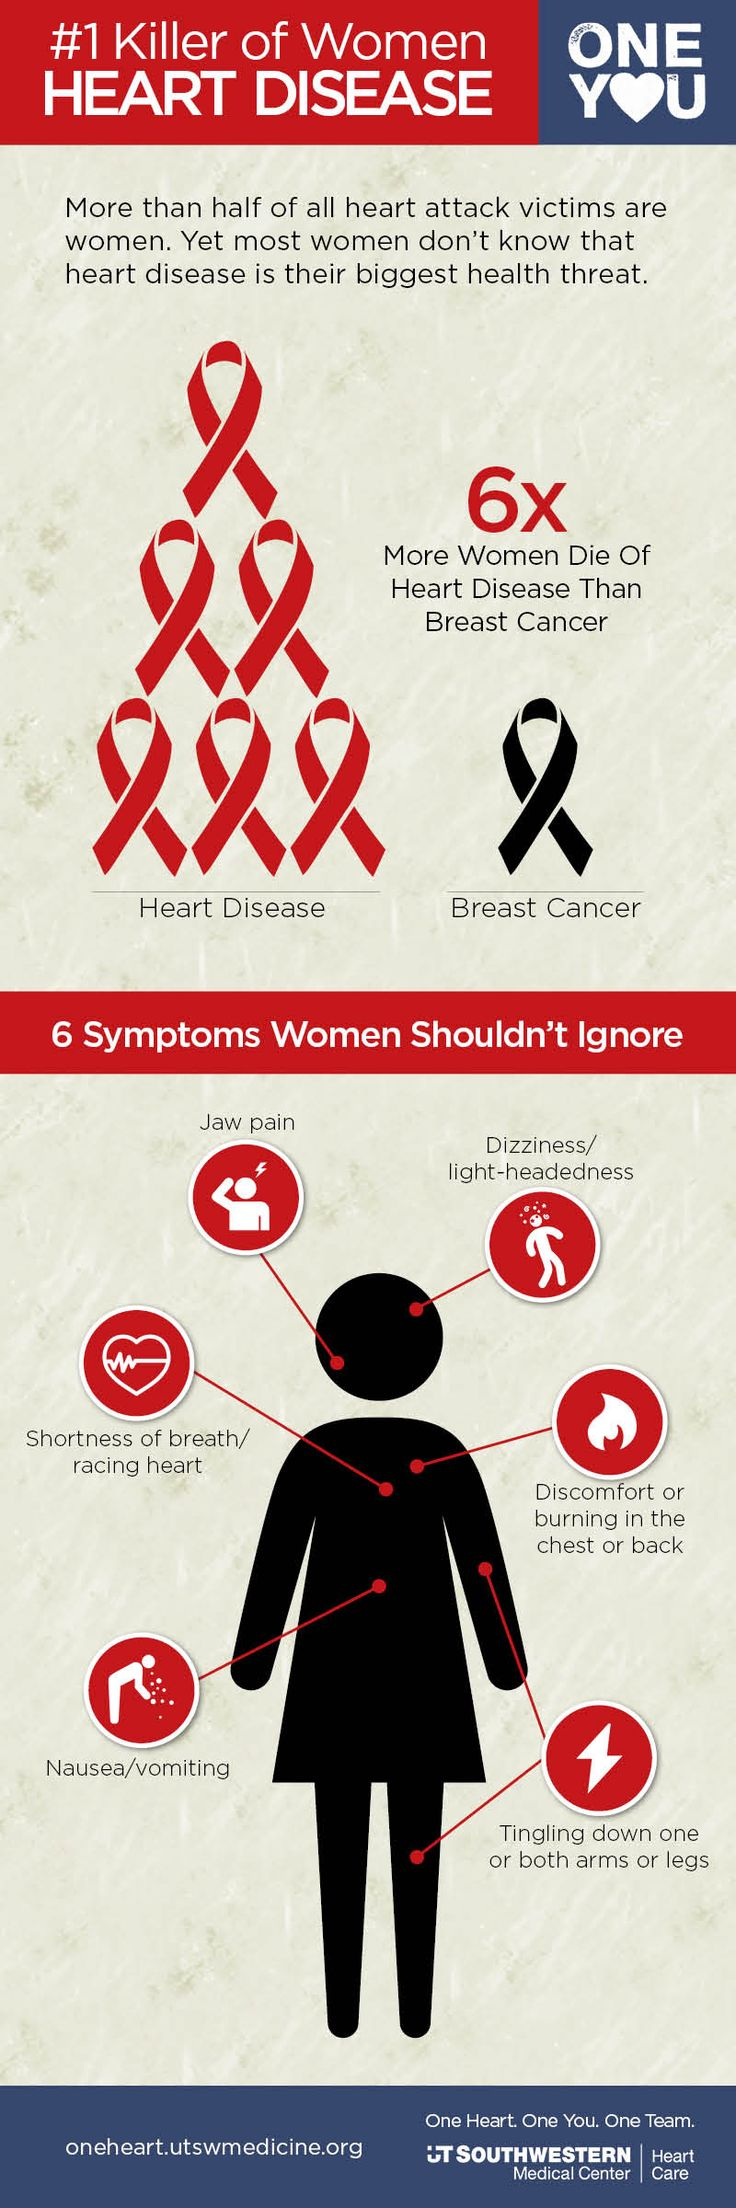 Heart disease in women often presents differently than in men. Here's some info on staying heart healthy